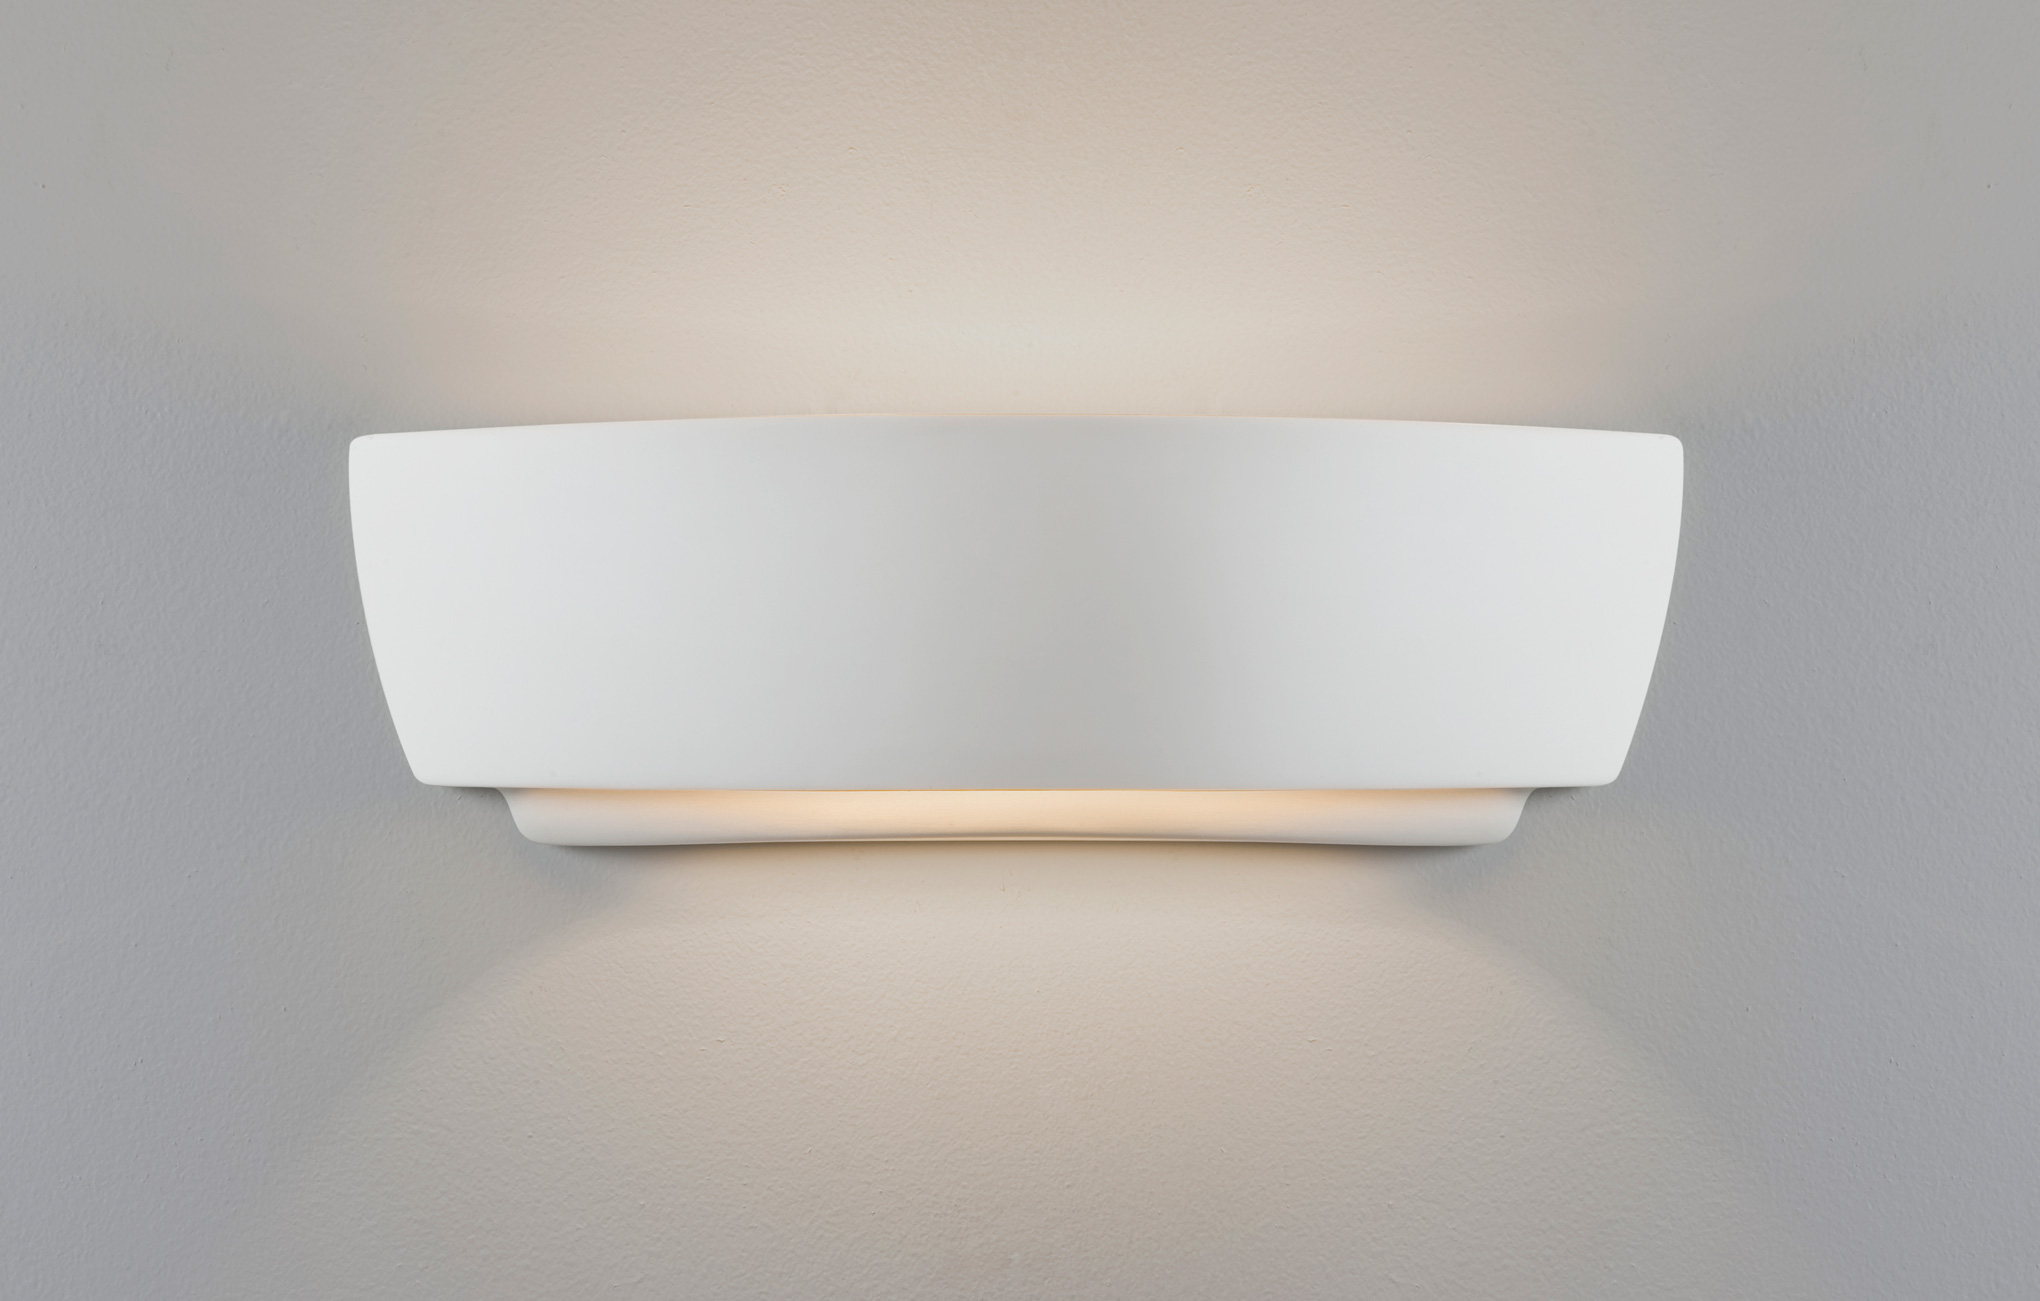 Astro Kyo ceramic plaster wall light up down white 60W E27 can be painted eBay